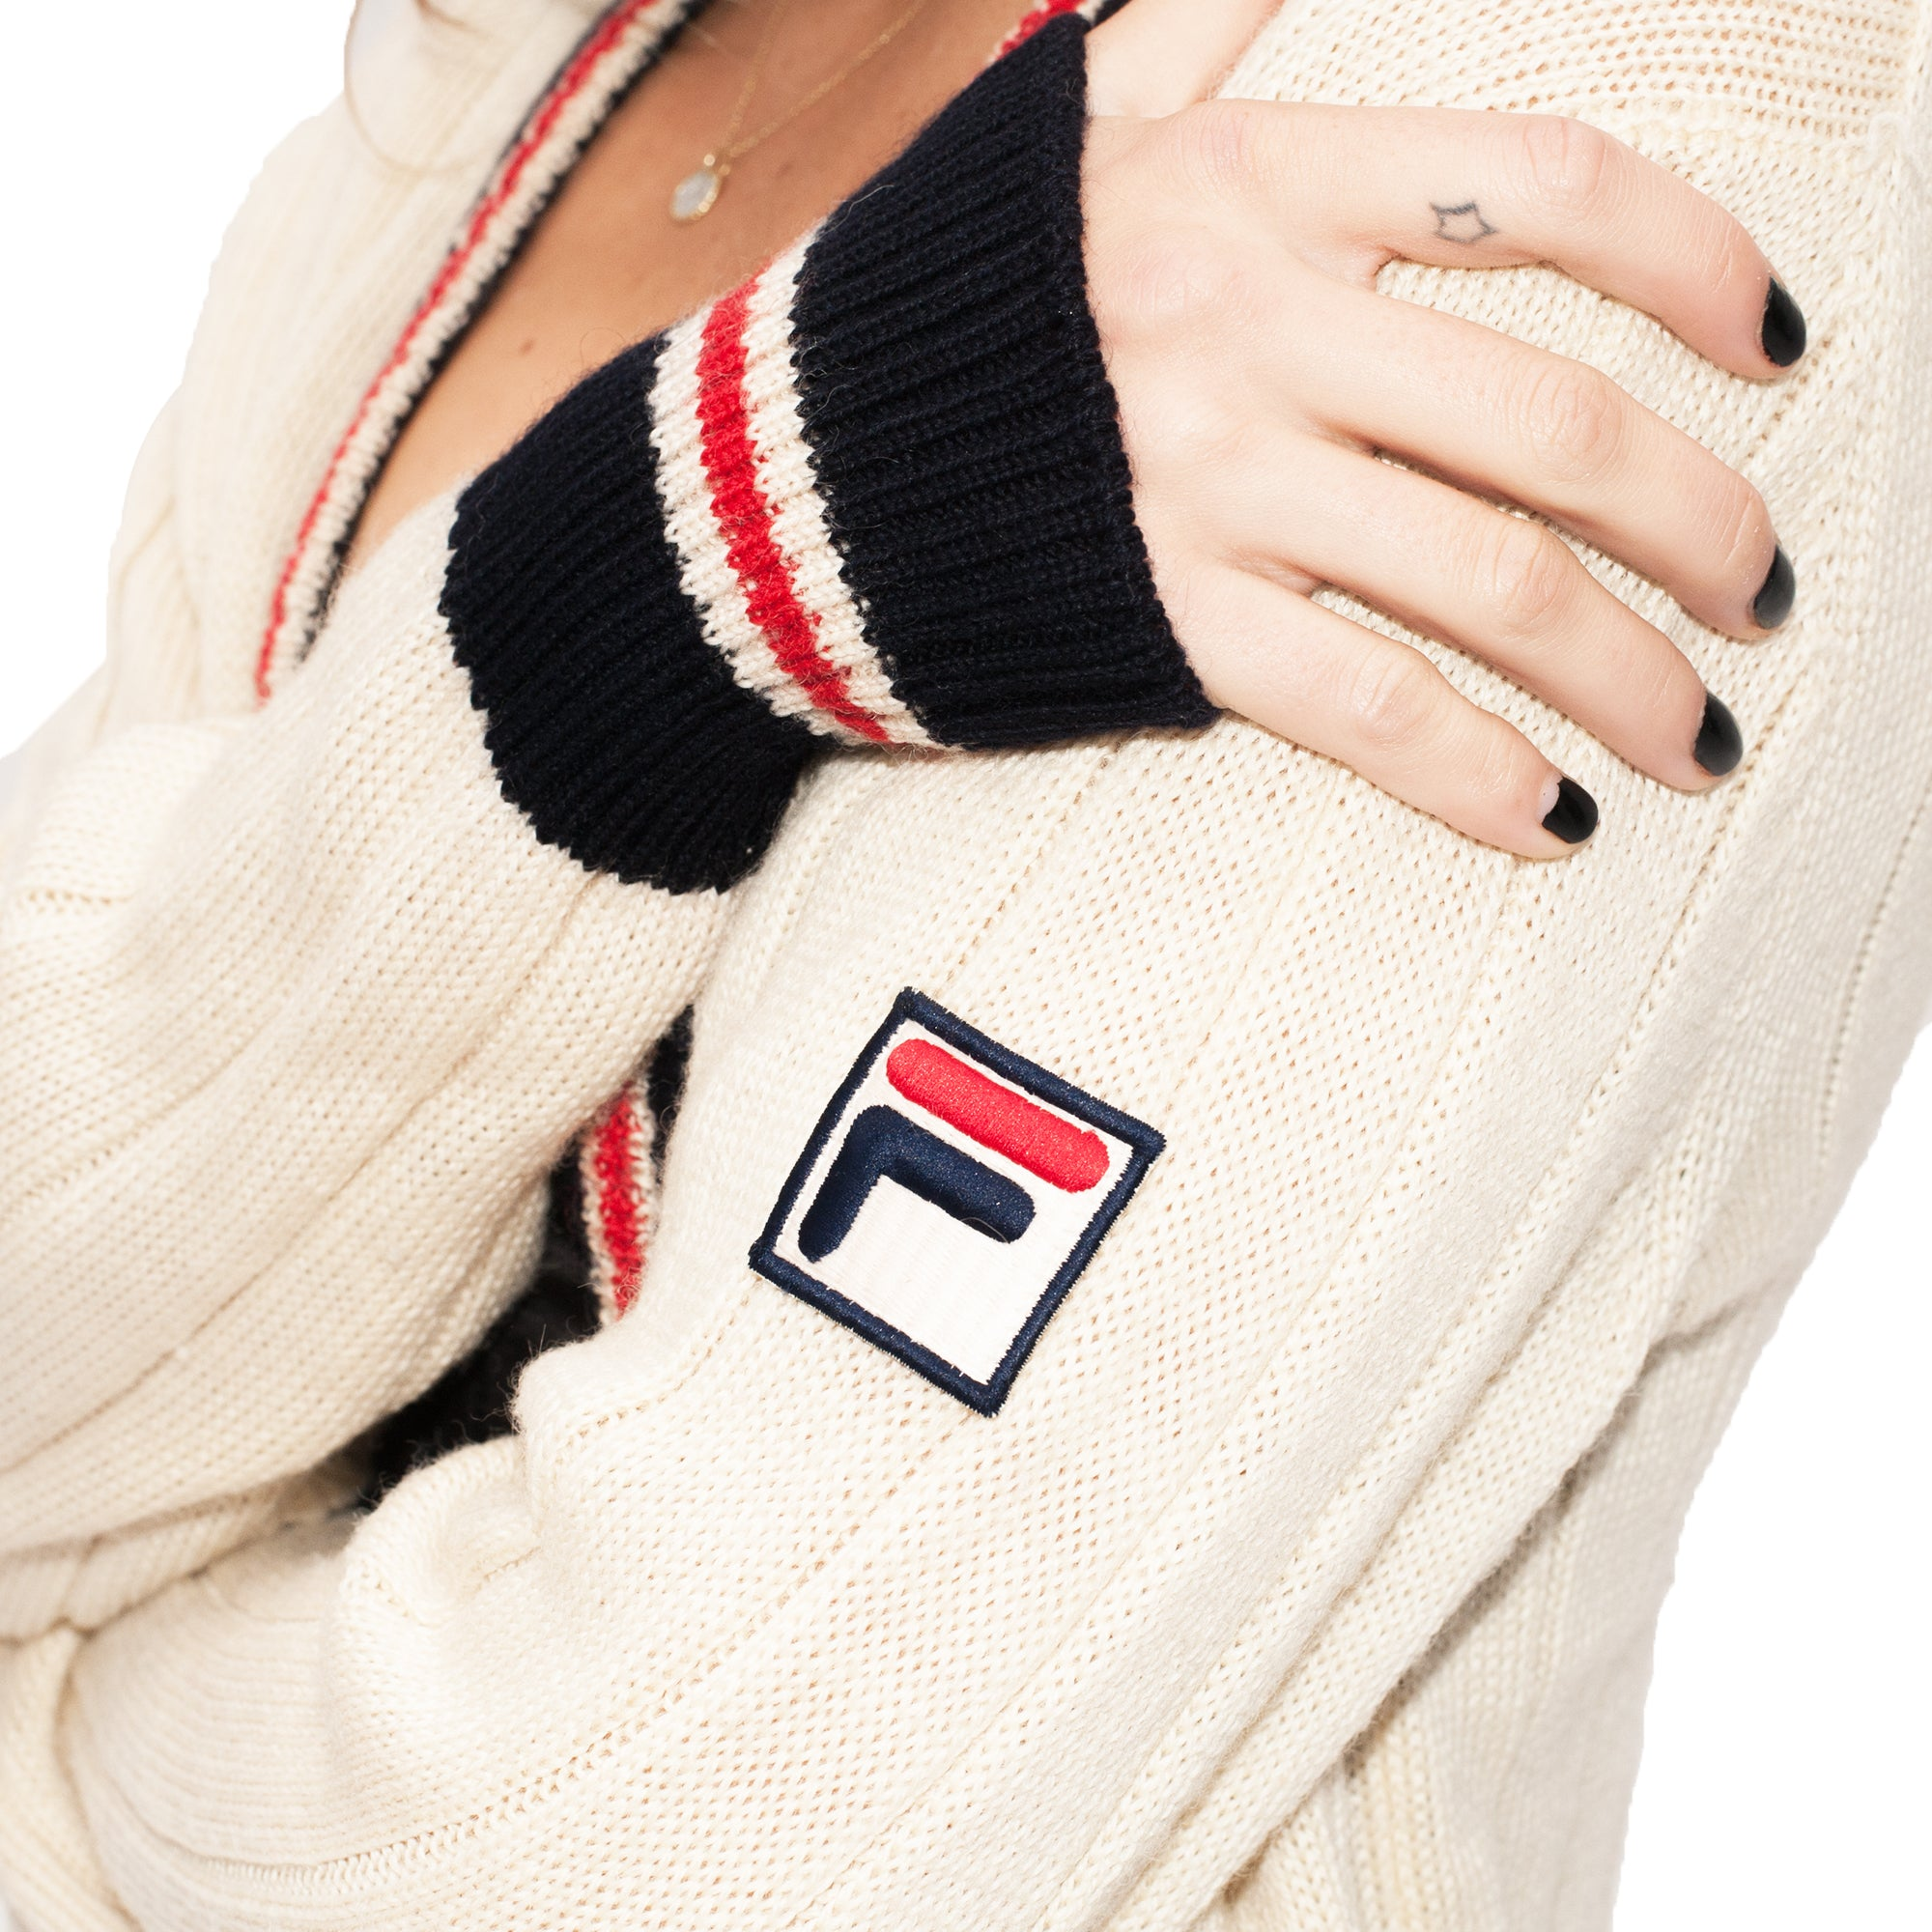 Fila Cardigan (Cream) UK 6-10